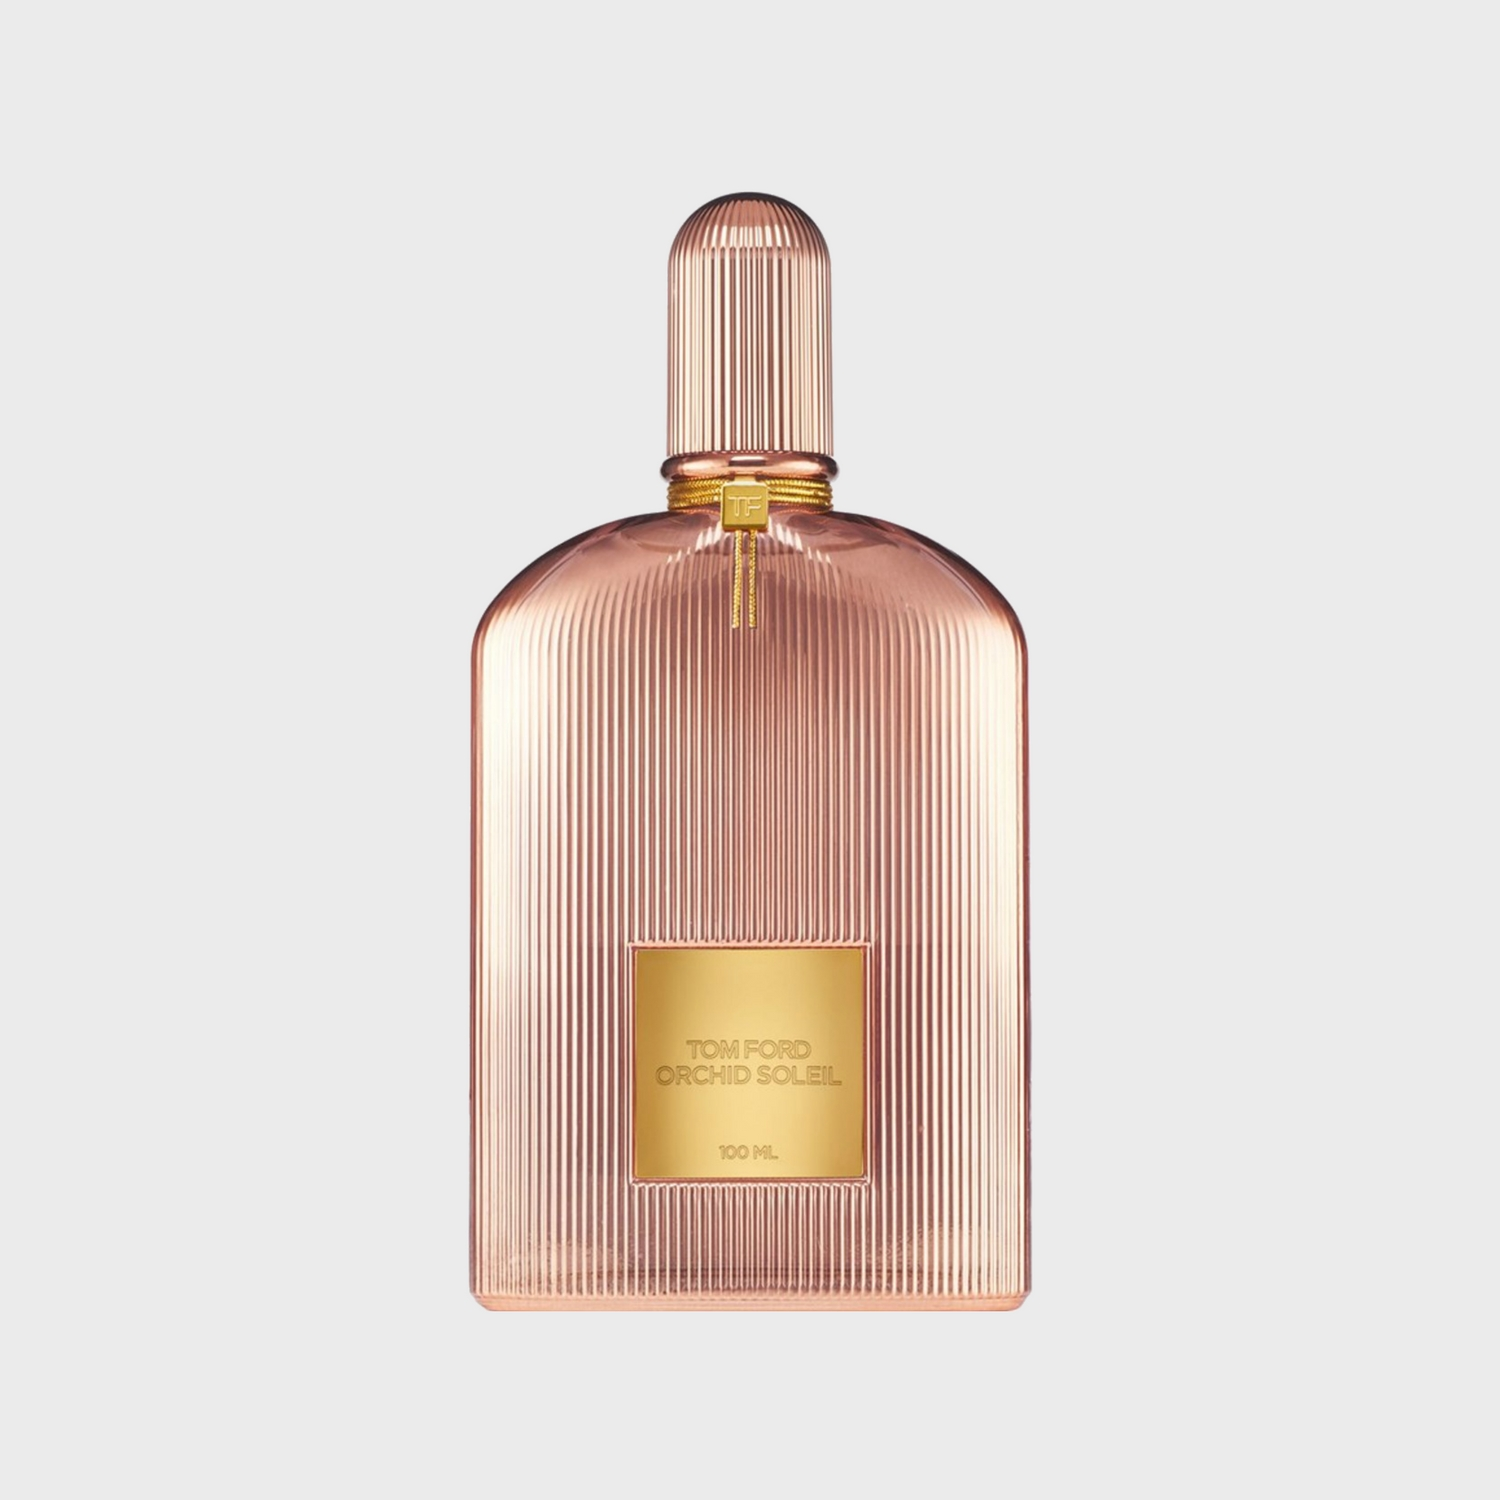 Orchid Soleil By Tom Ford Perfume Review